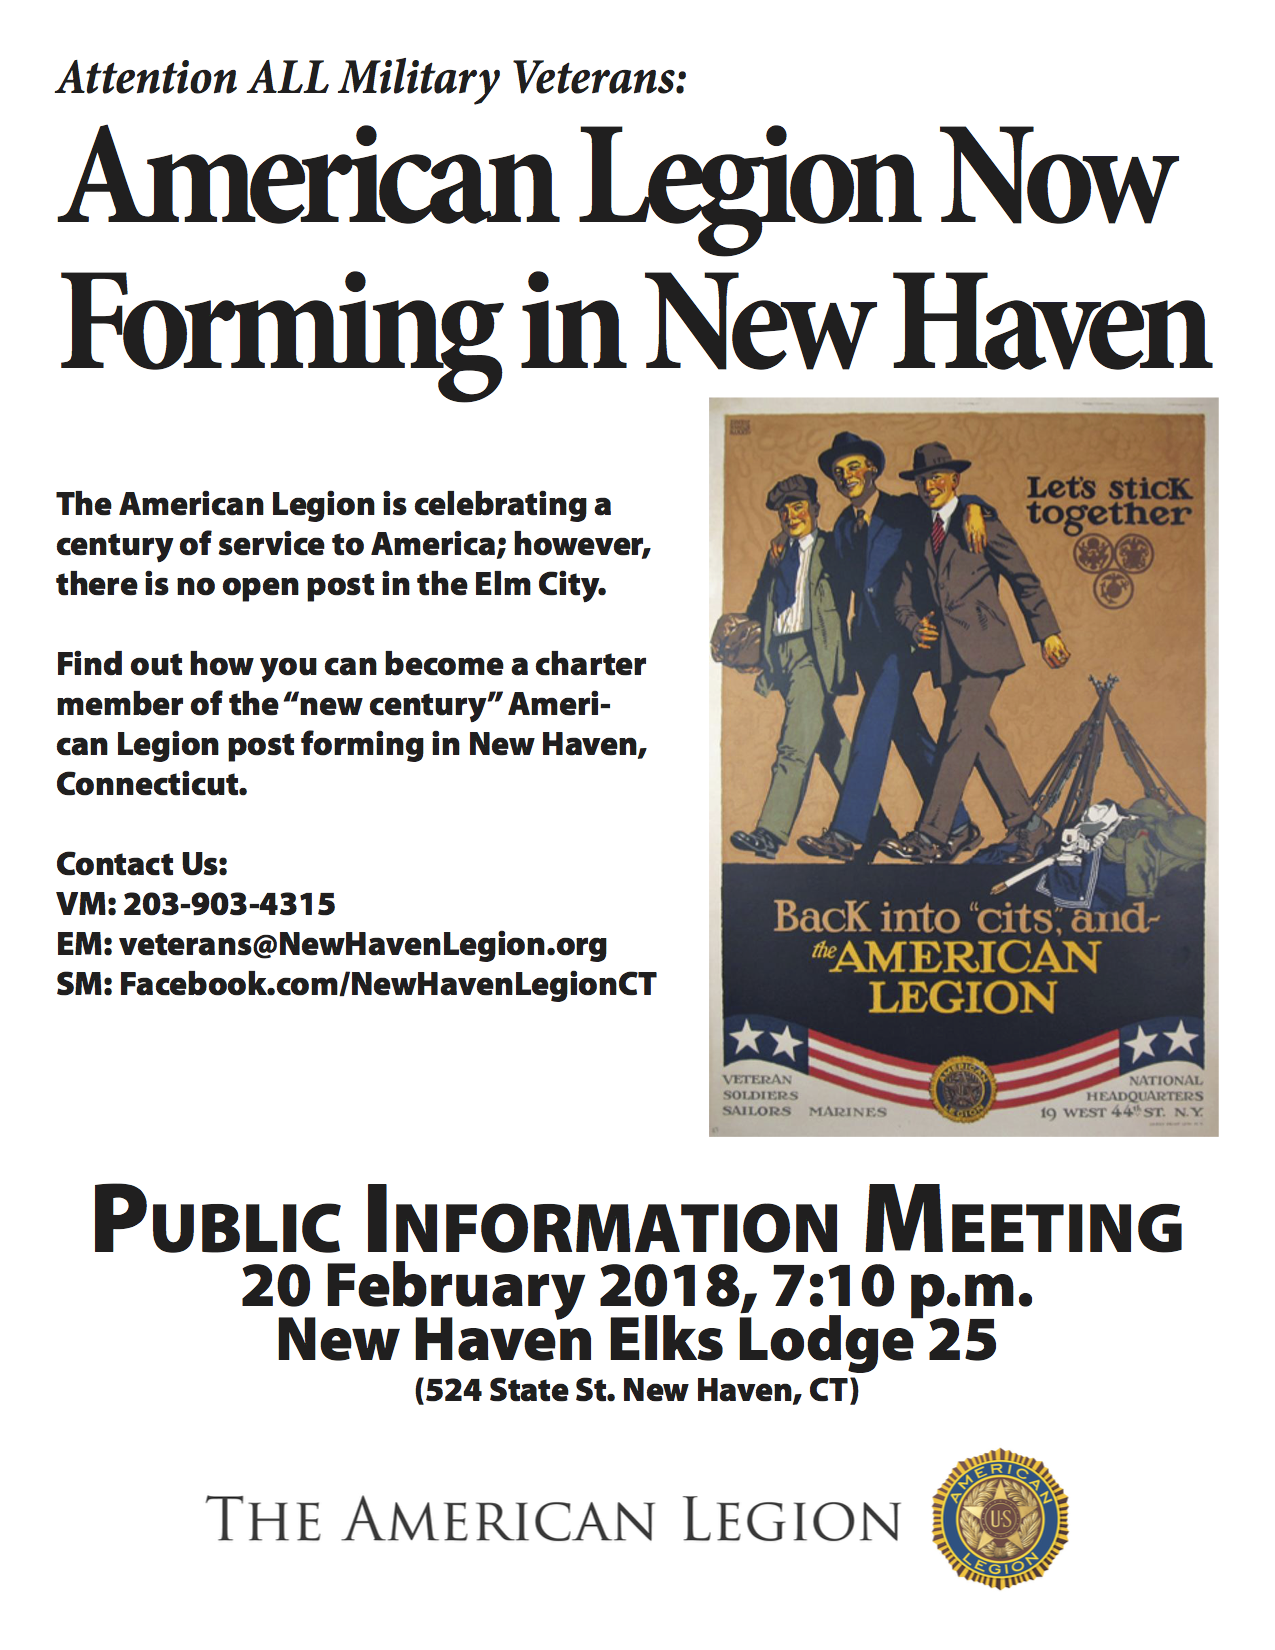 AMERICAN LEGION POST FORMING IN NEW HAVEN ANNOUNCES INFORMATIONAL MEETING